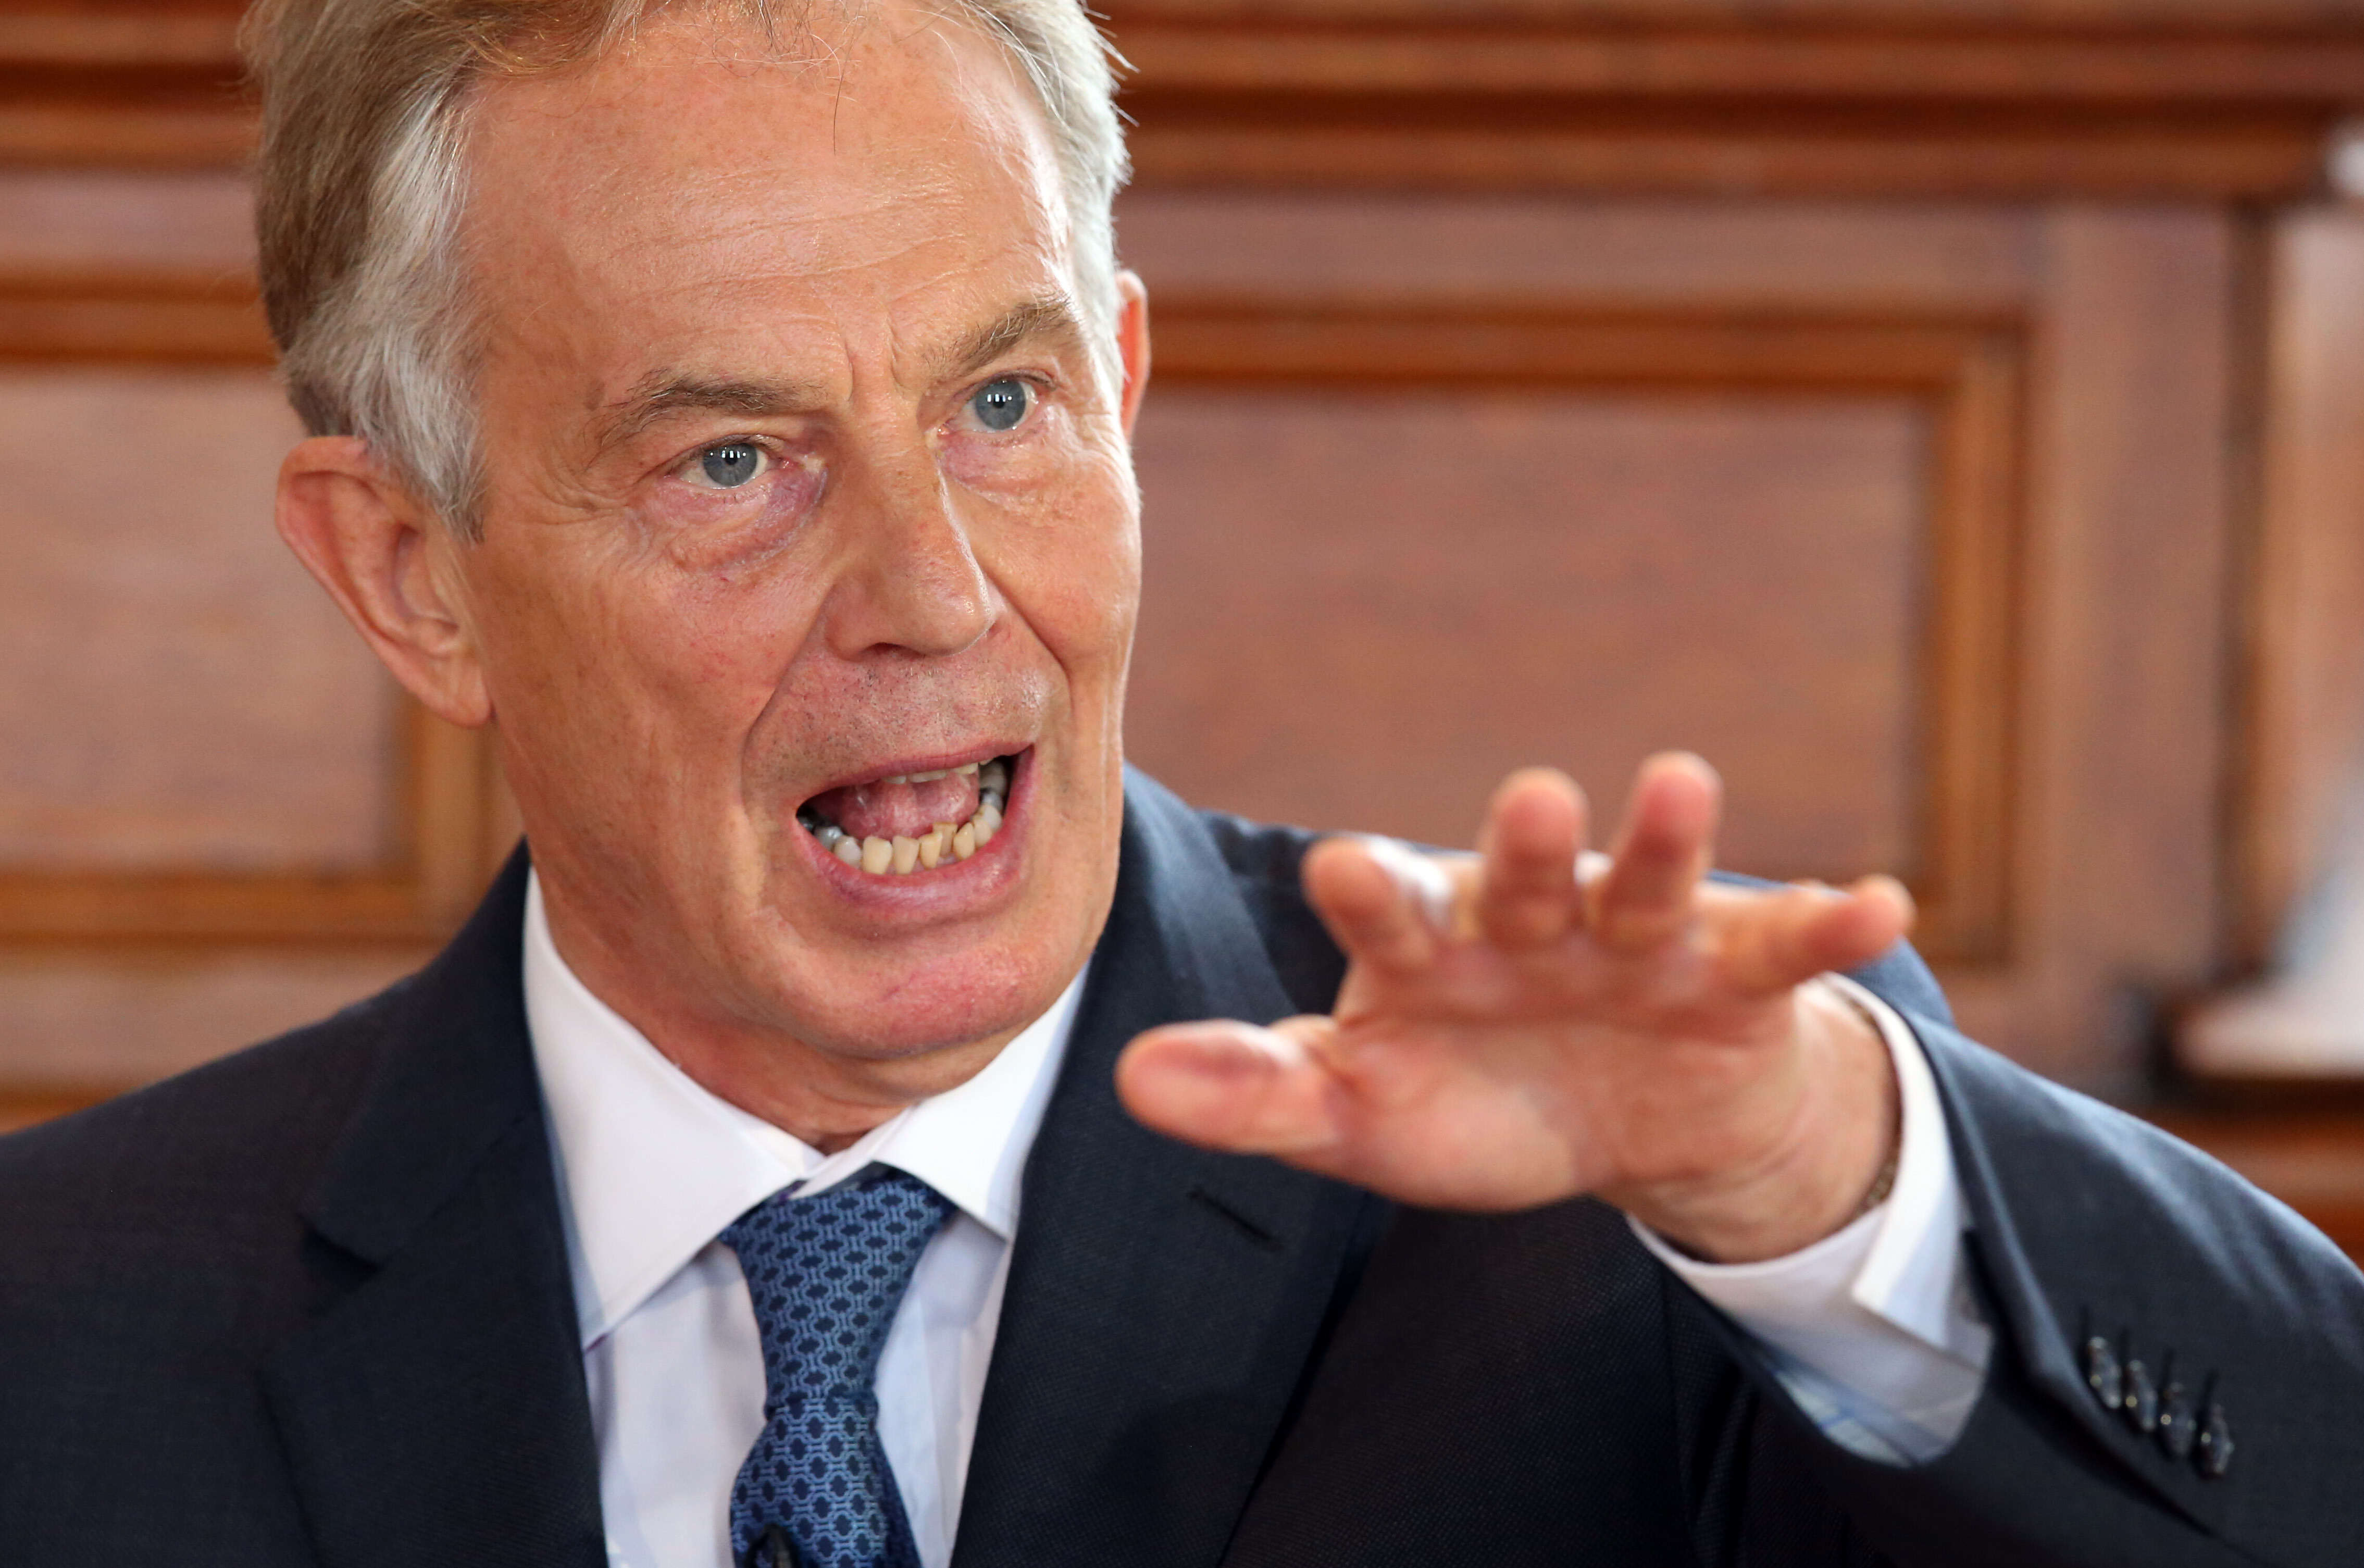 blair Heres What You Need To Know About Shadowy Global Elite Bilderberg Meeting